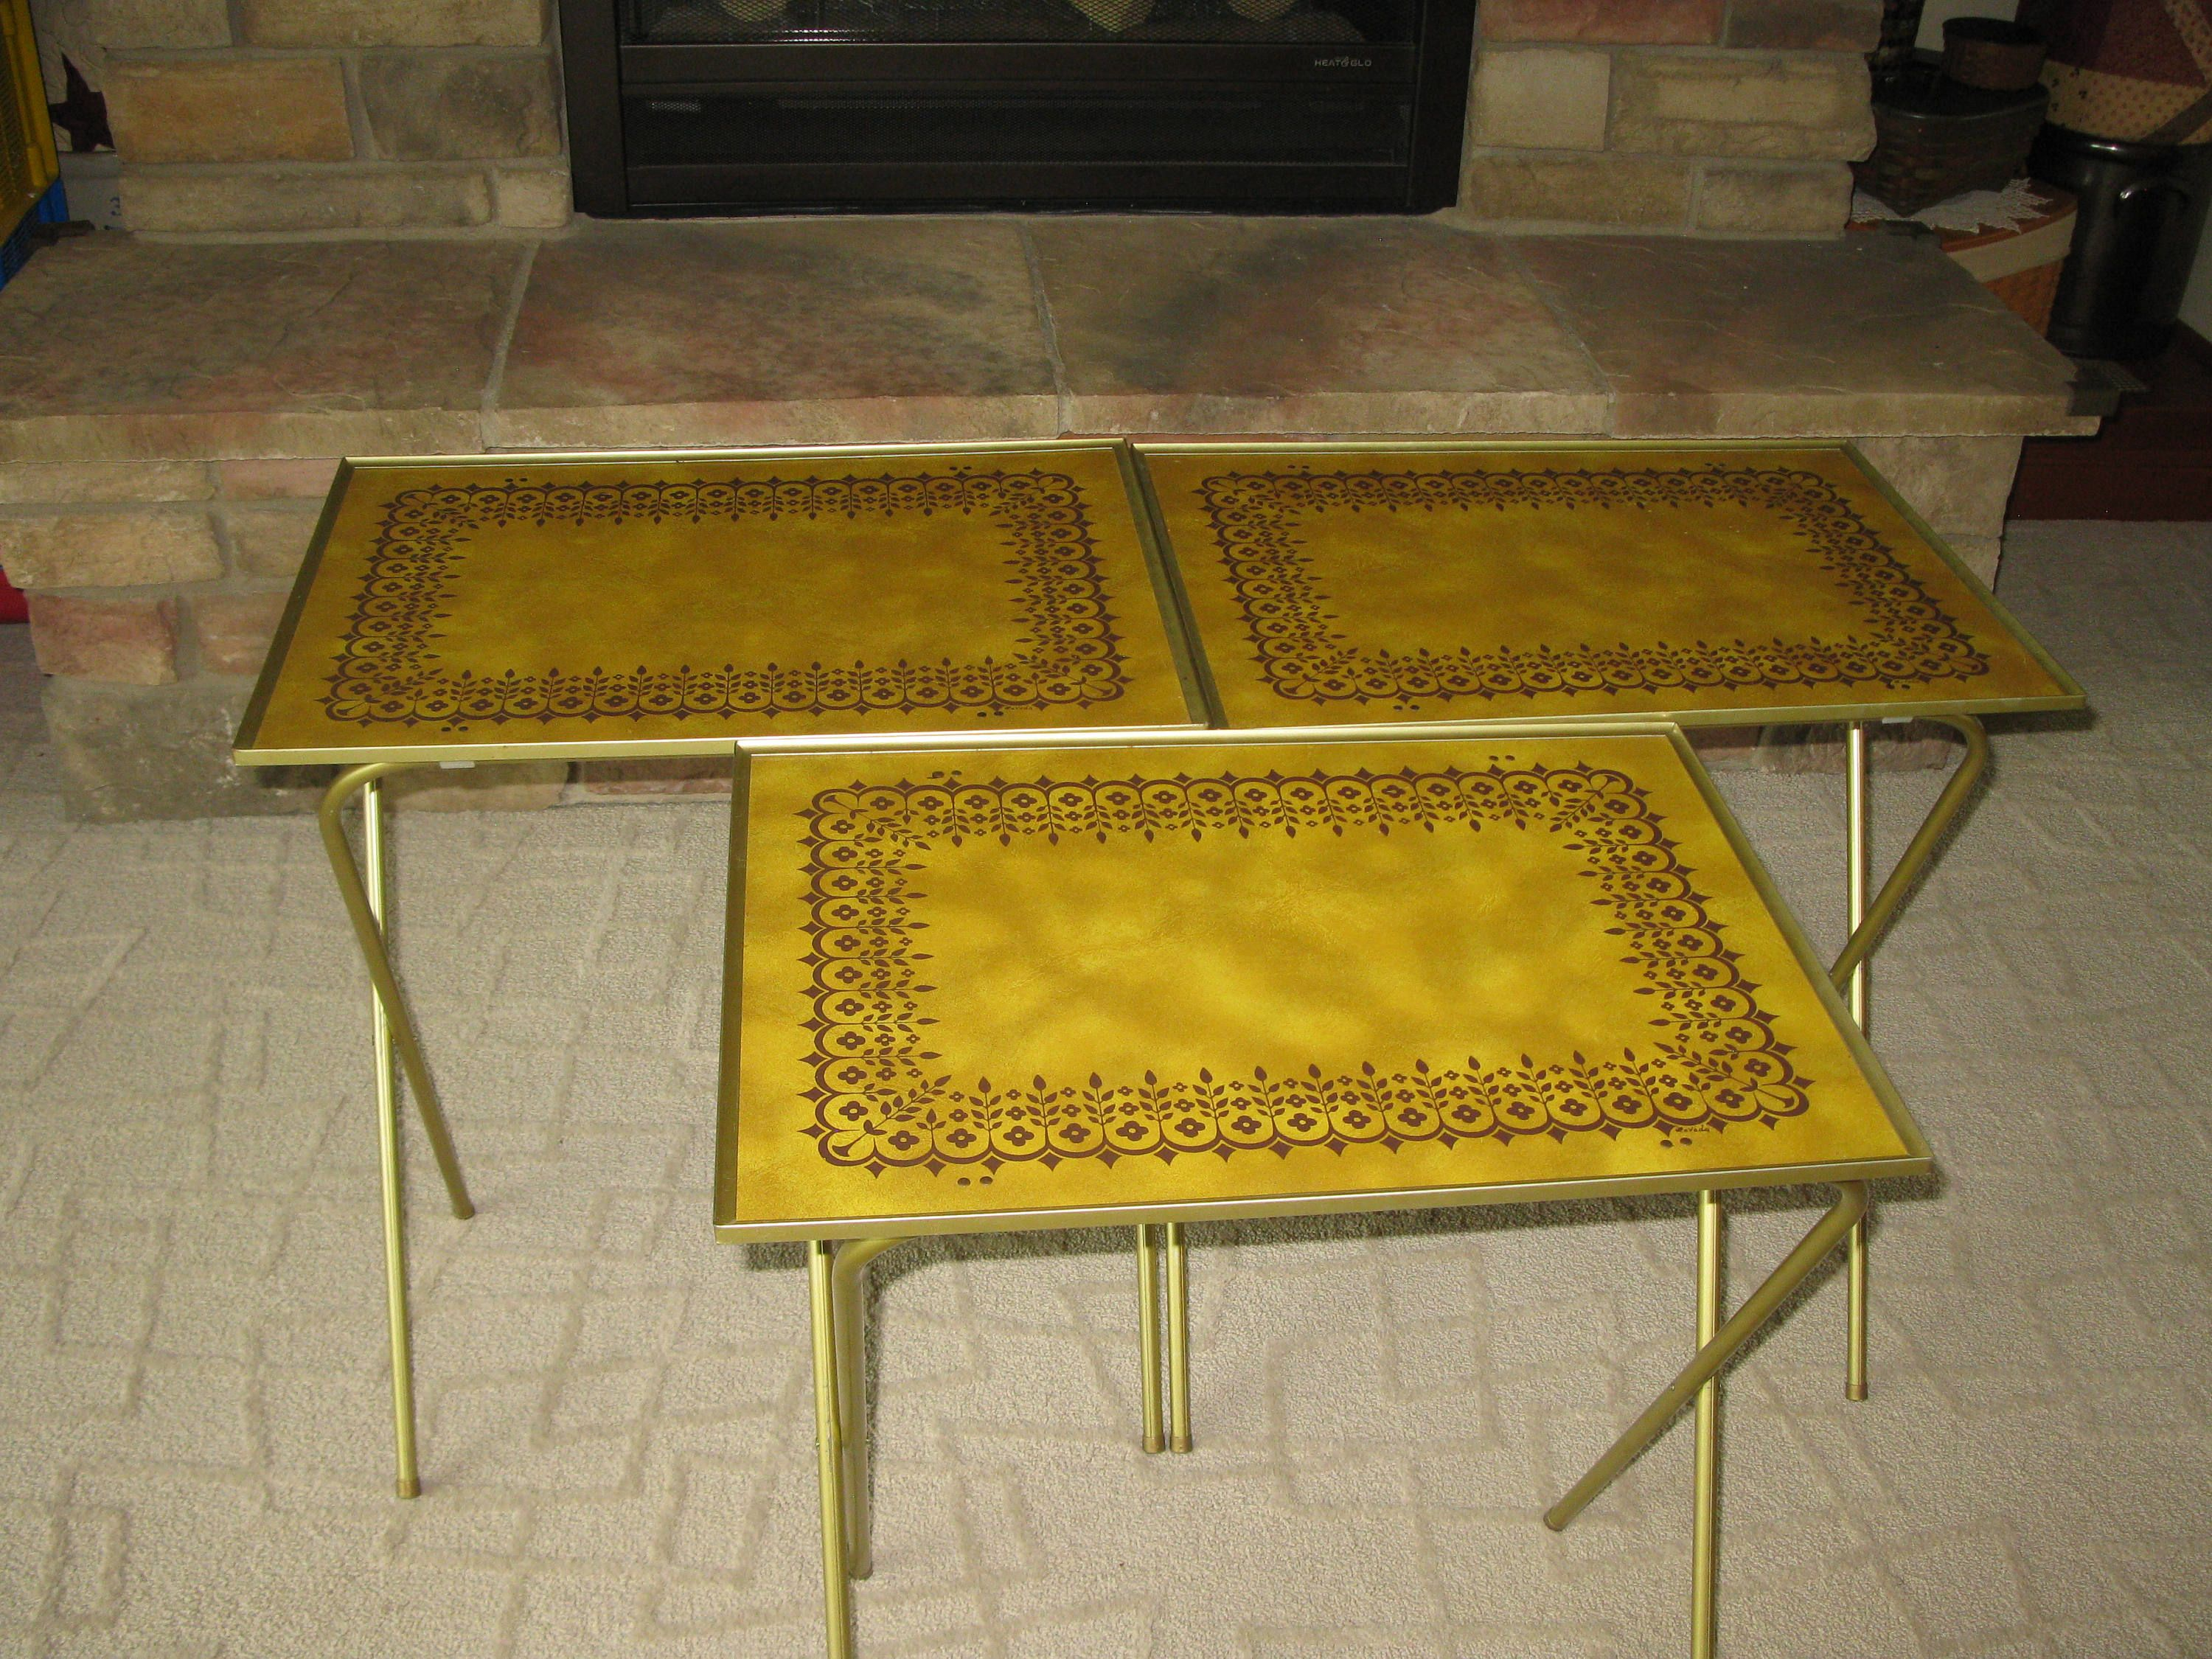 1960s TV Trays  (set Of 3)   Lavada  Gold Faux Leather Wood Masonite   Folding Trays  Folding TV Table  Foldaway Table Retro Tv Trays Vintage